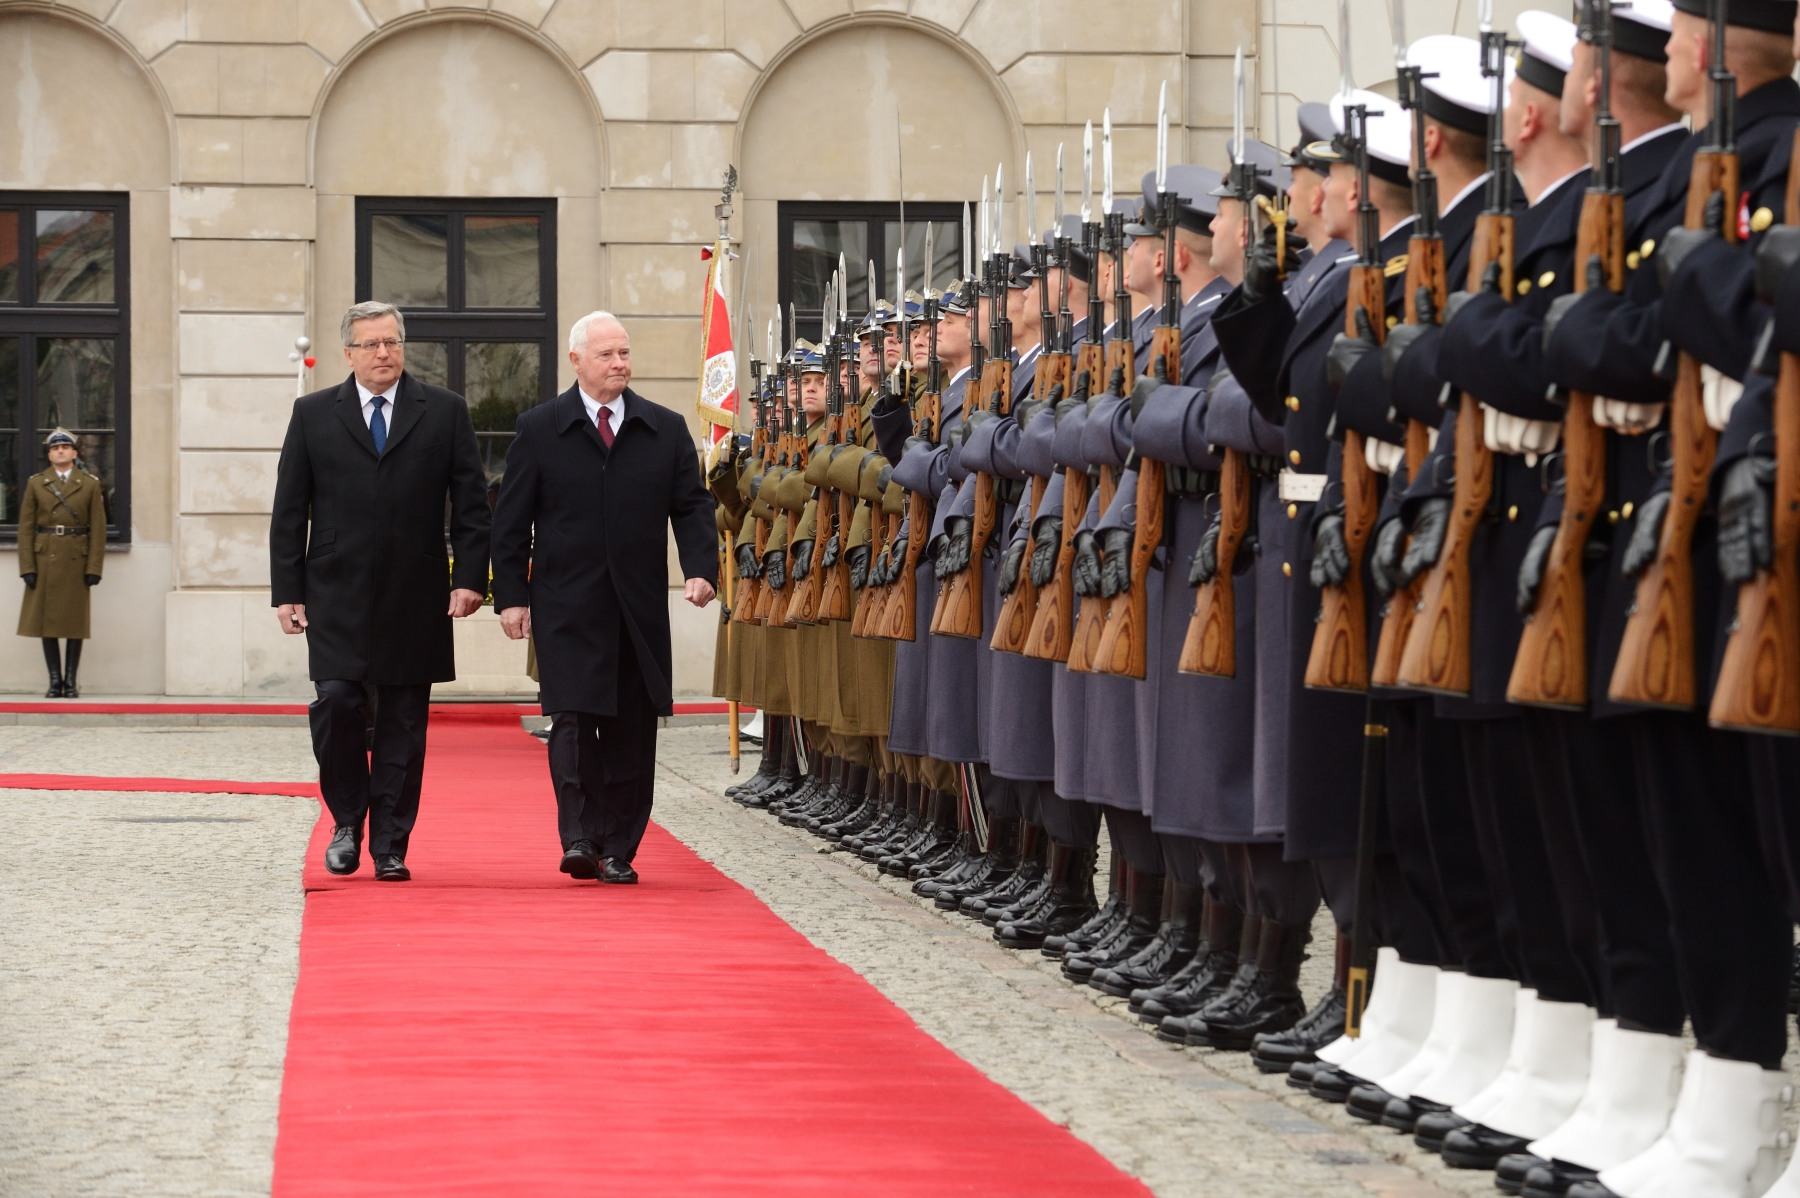 During the ceremony, the Governor General reviewed a military guard of honour.